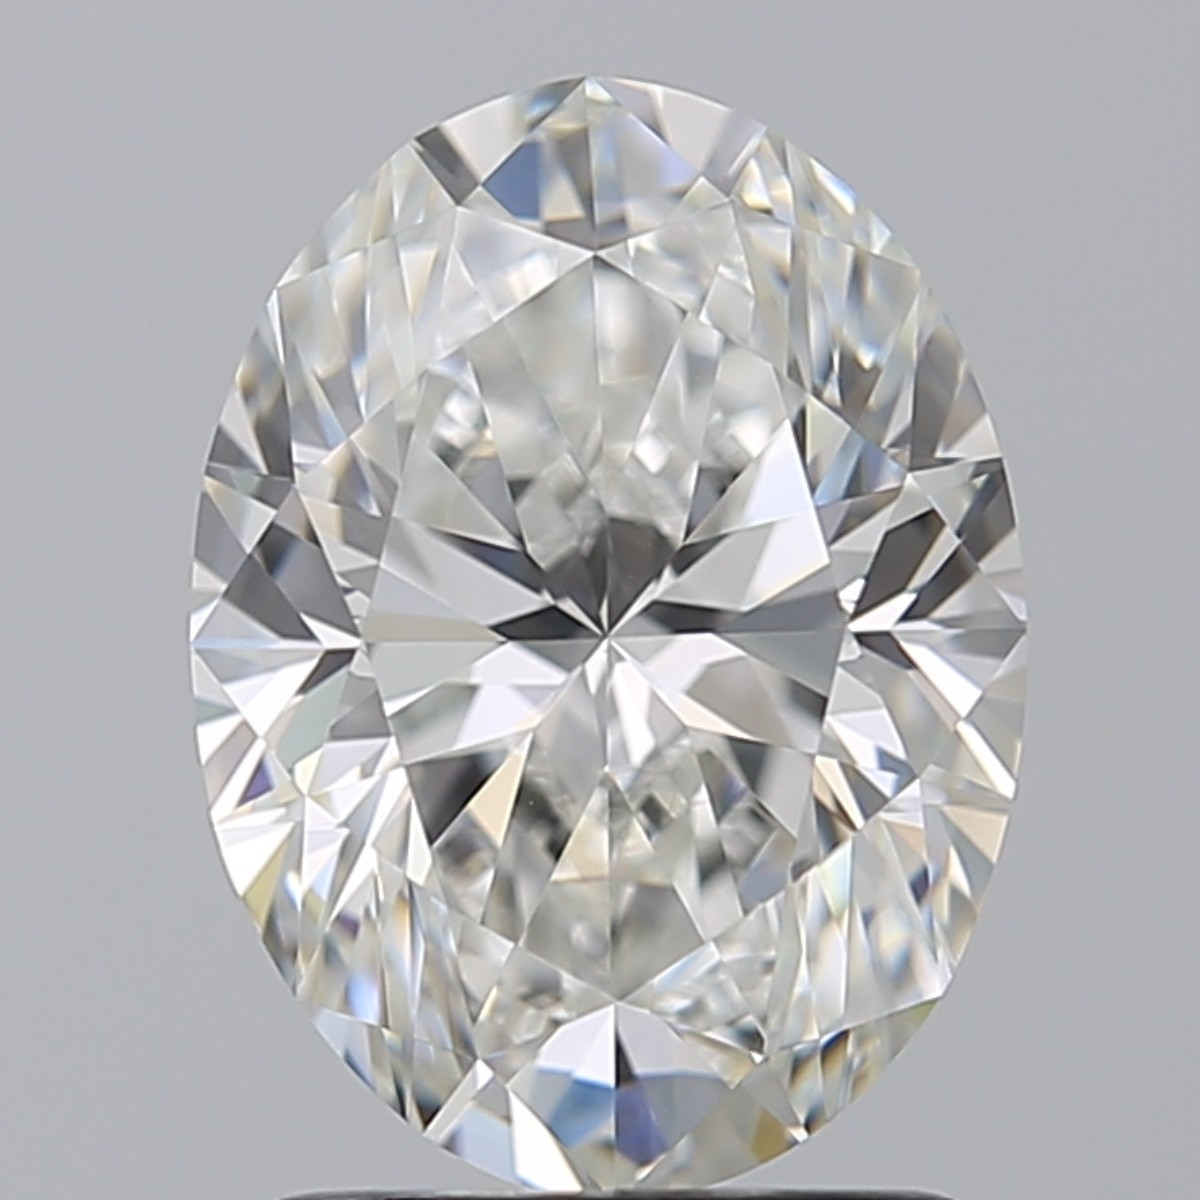 2.02 Carat Oval Diamond (G/VVS2)